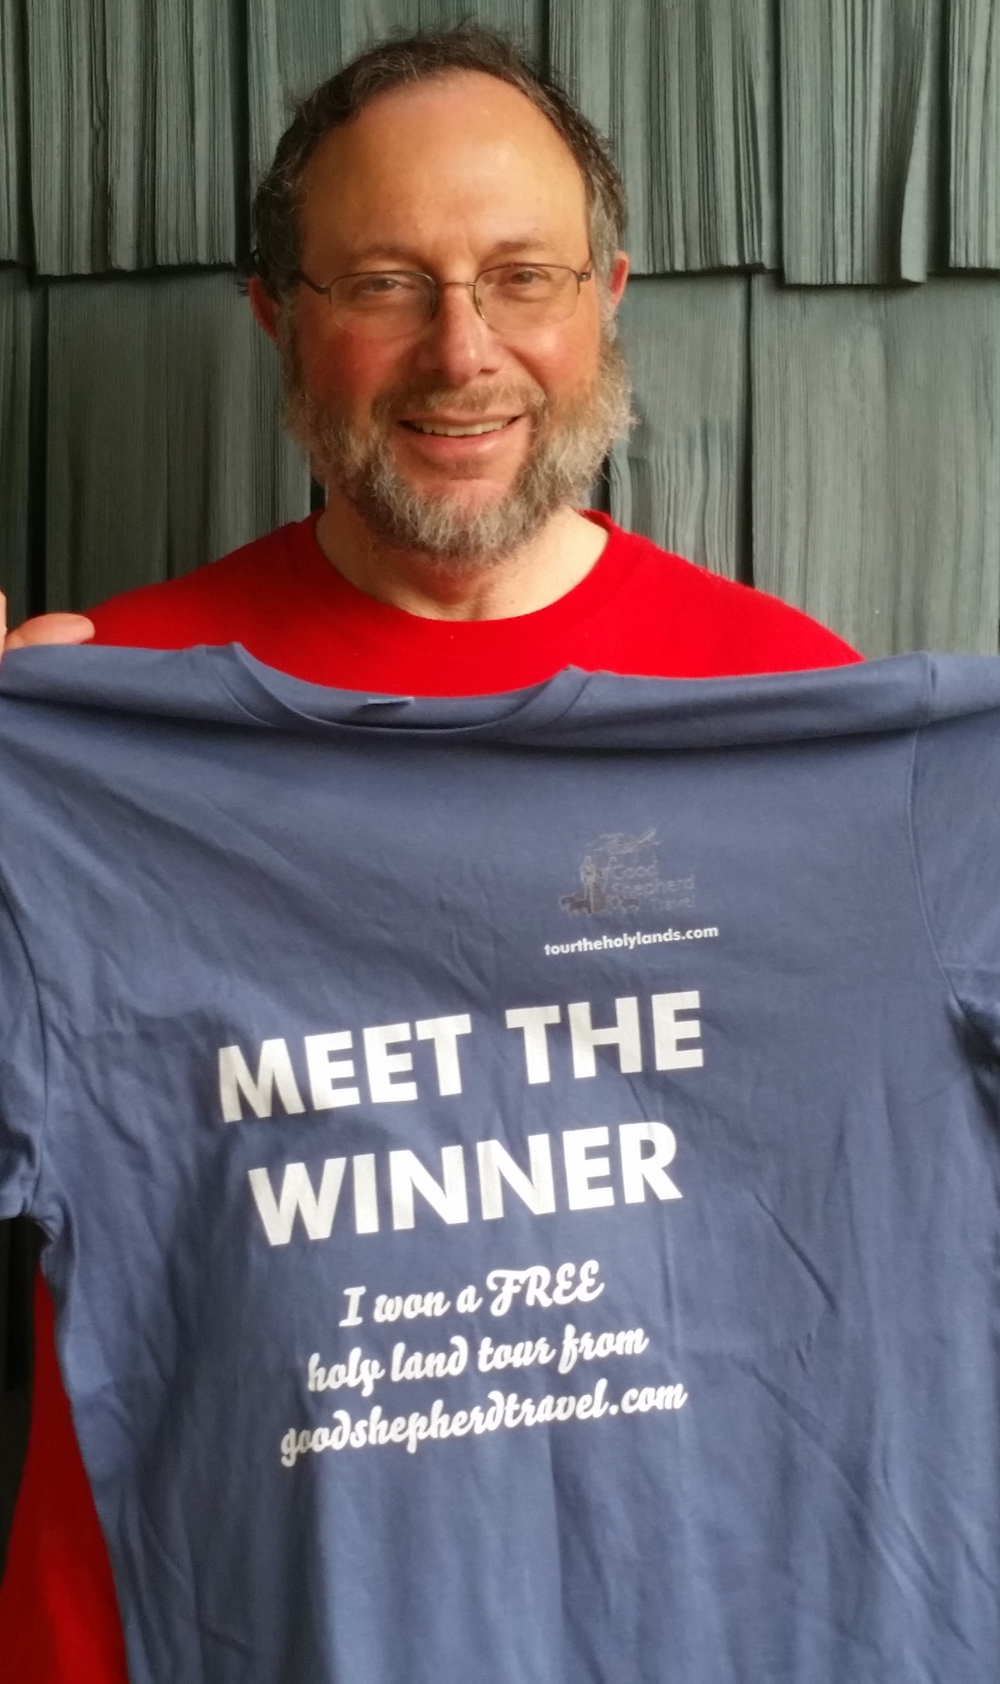 Our 2015 Sweepstakes winner, Steven C. from New Jersey